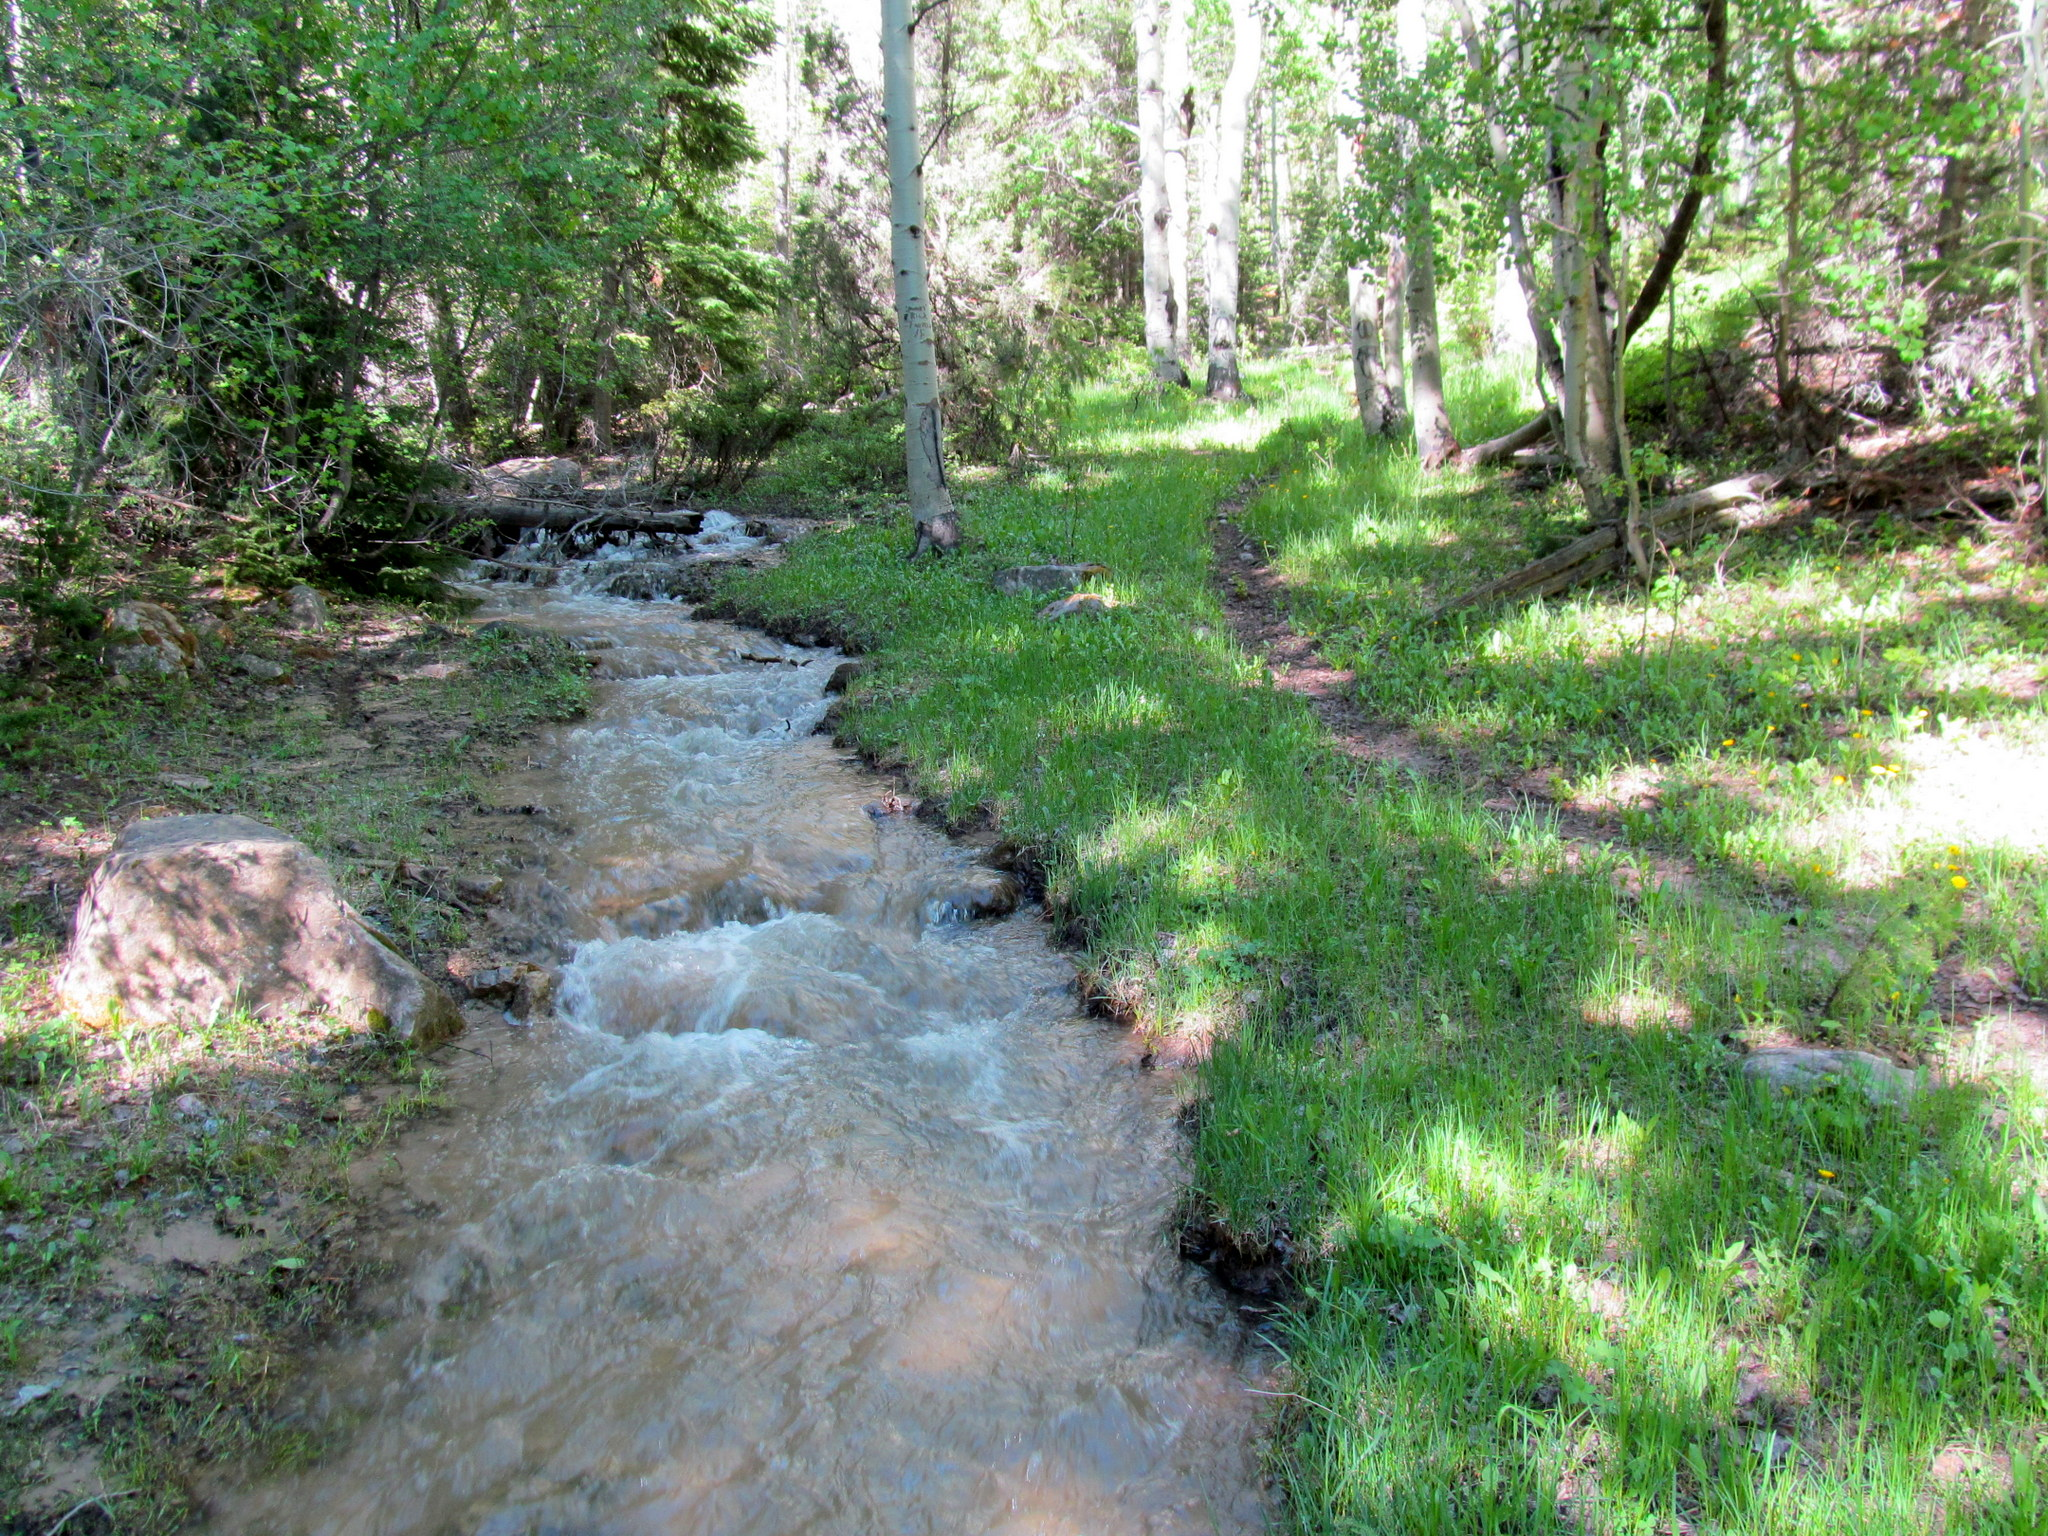 Photo: Stream alongside the trail